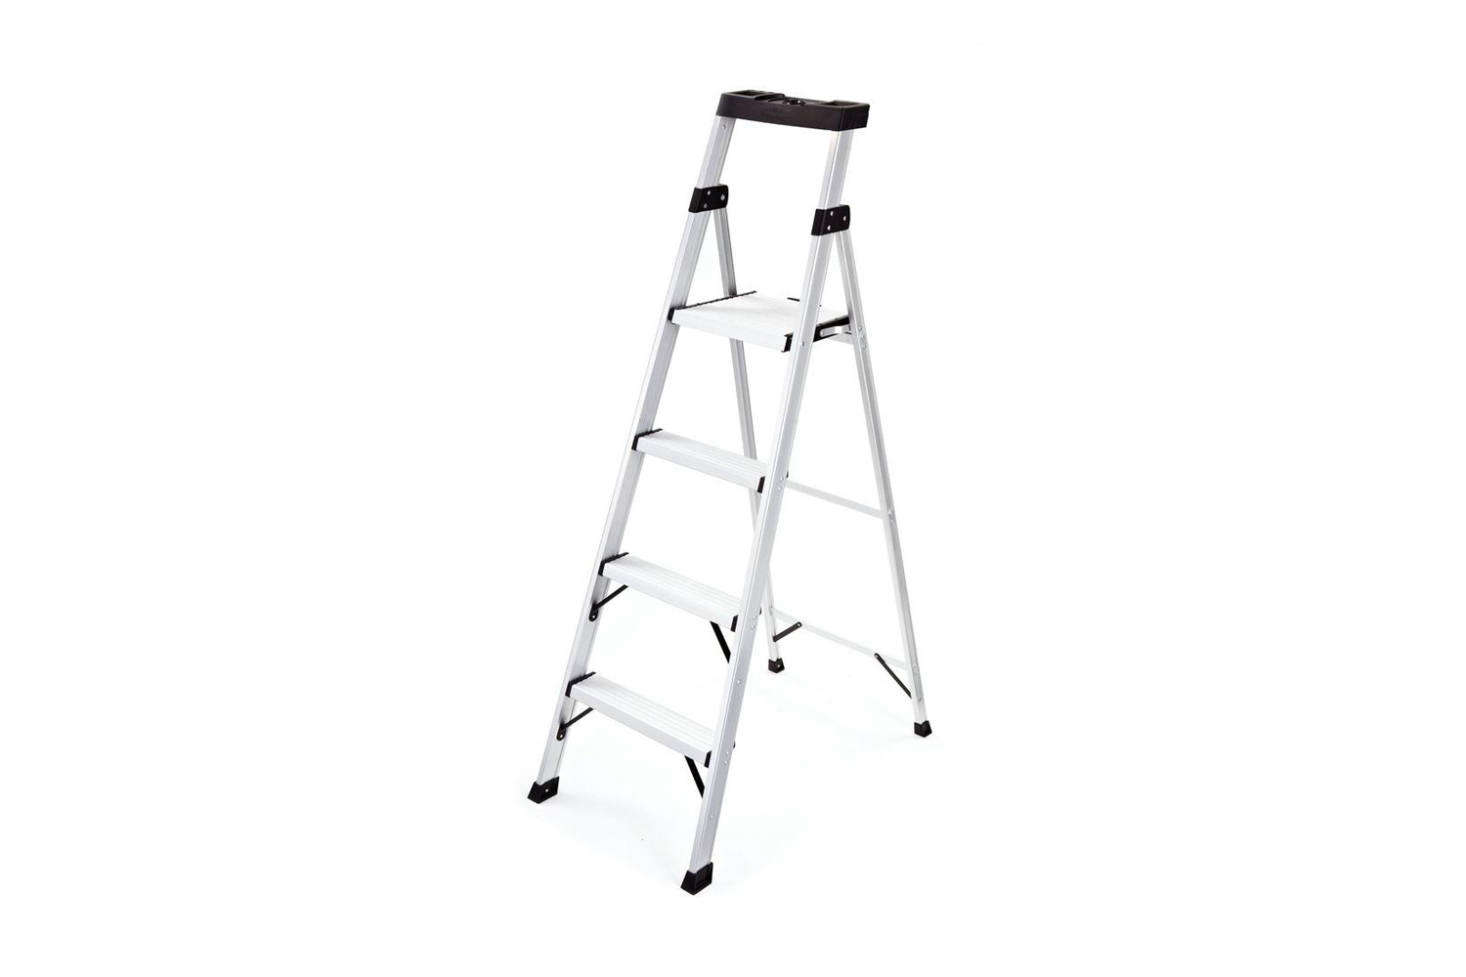 The Rubbermaid 4-Step Aluminum Step Stool is $79.99 at The Home Depot.